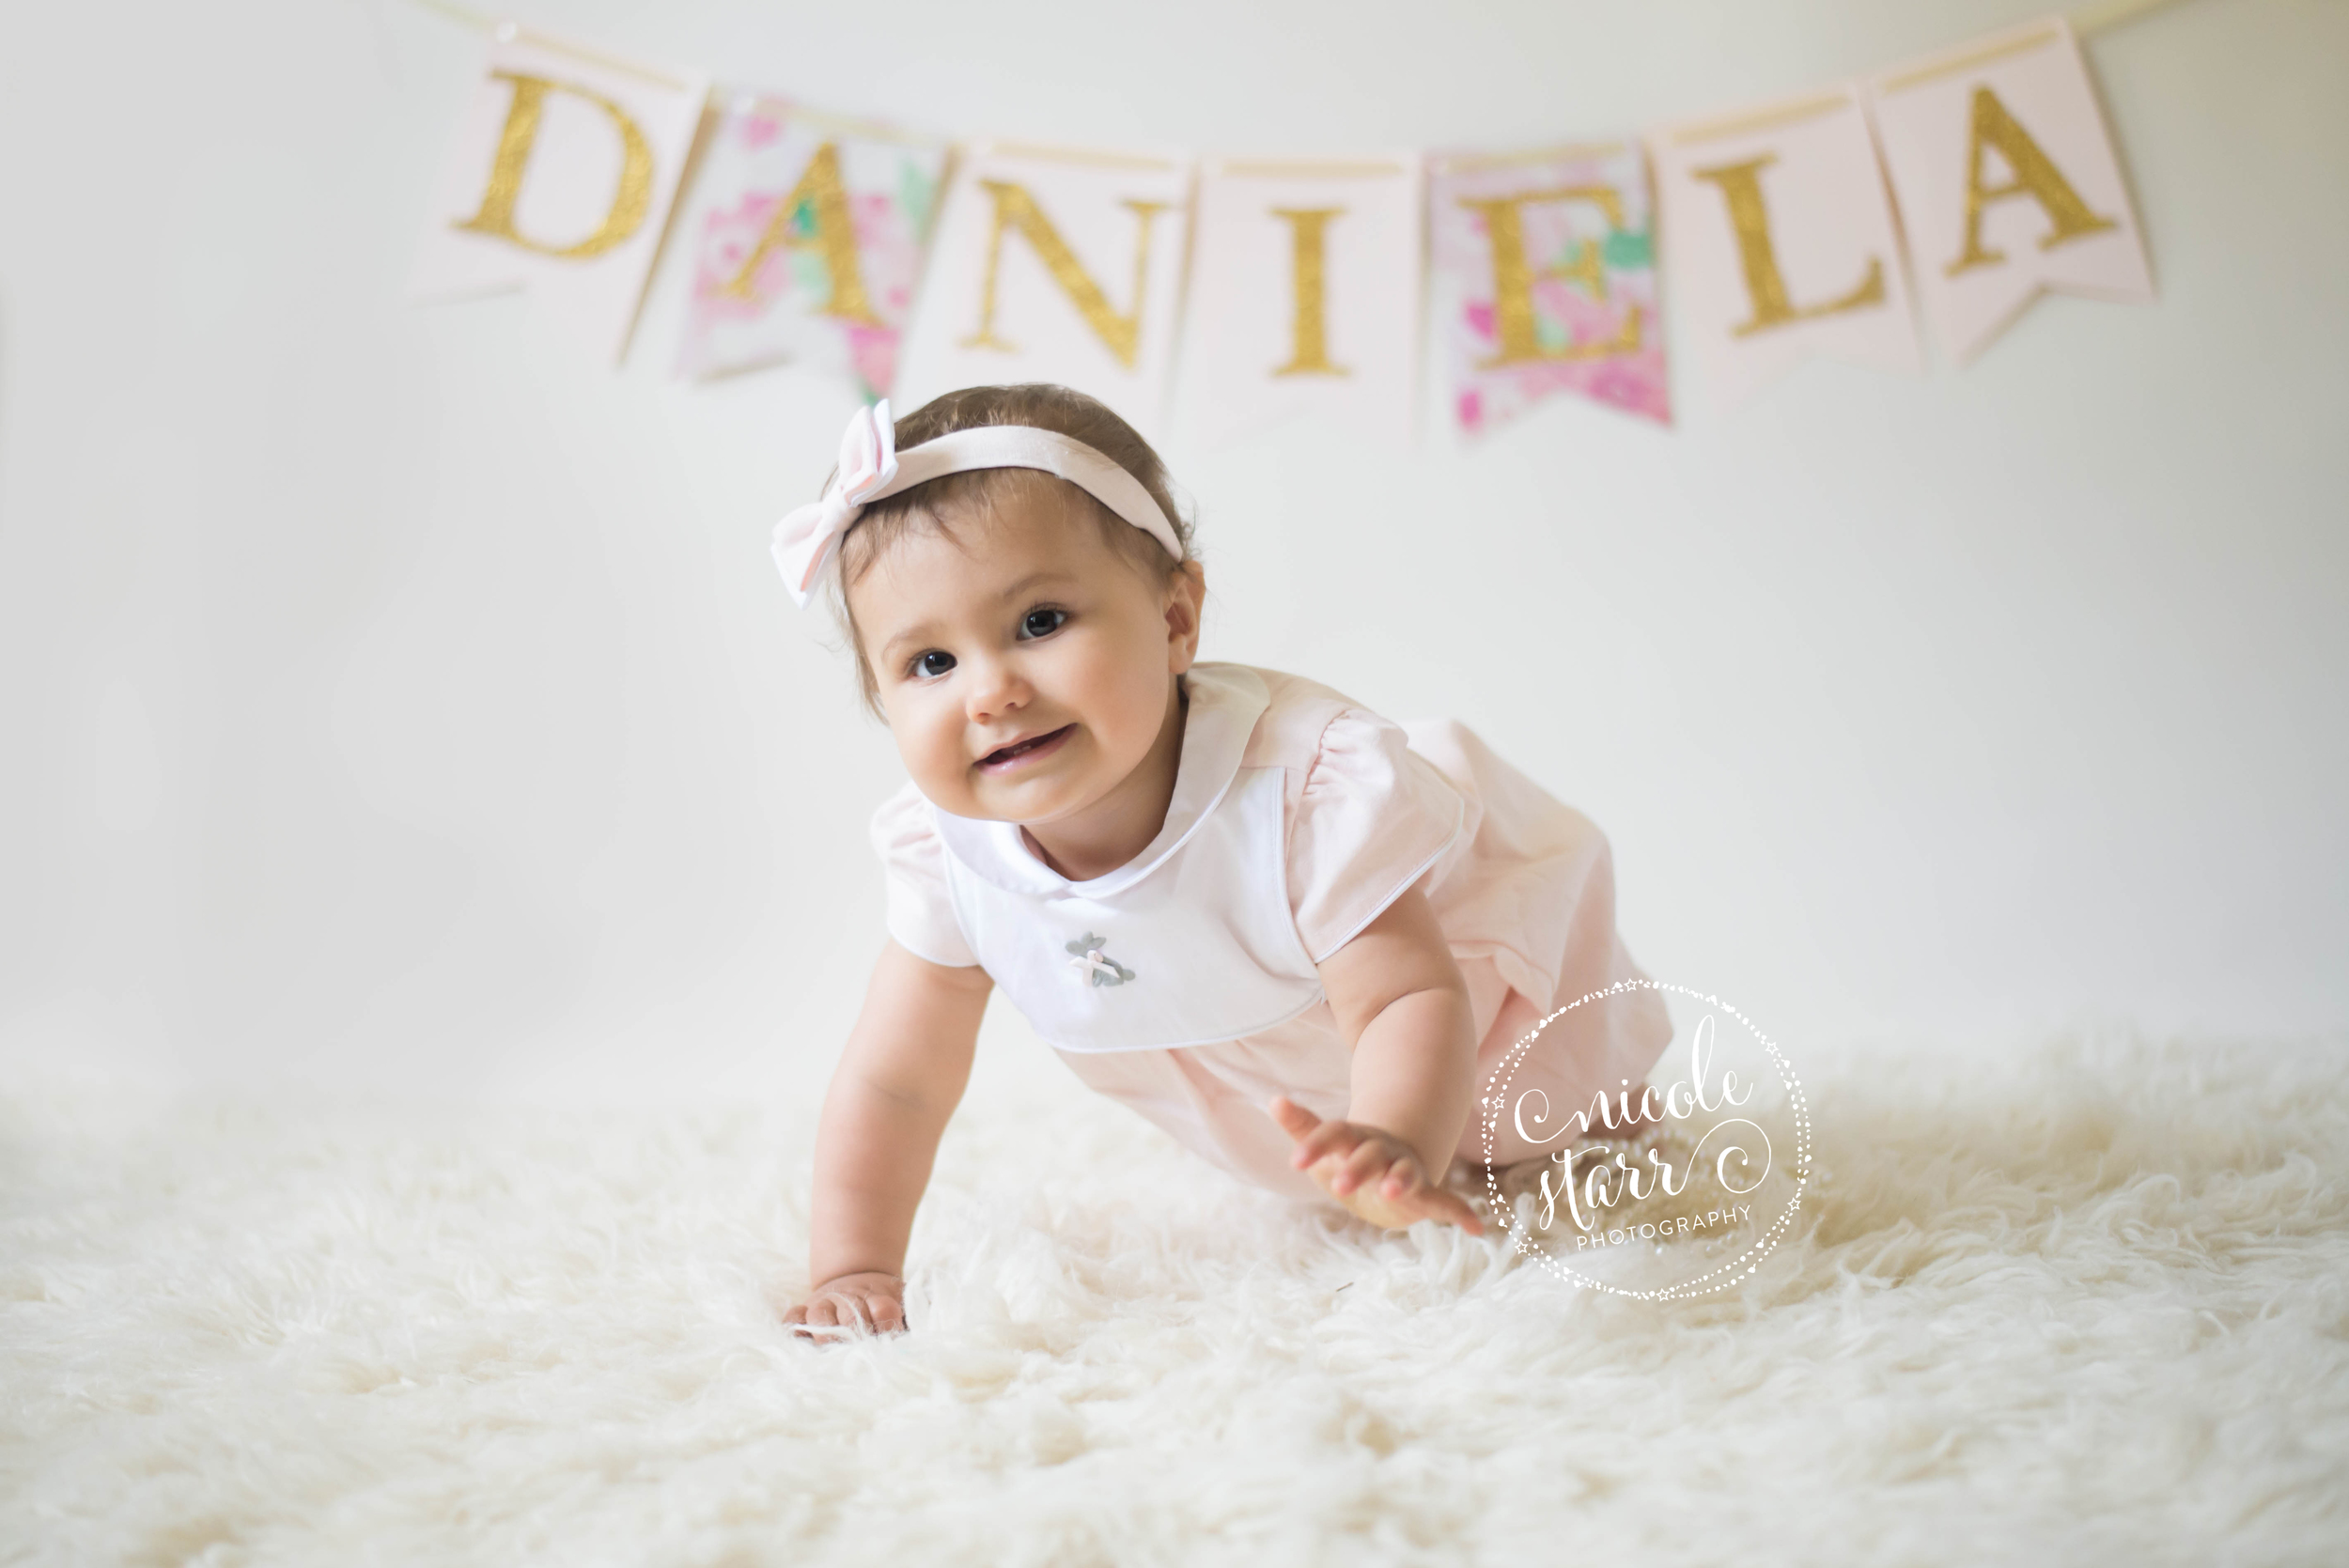 simple and classic baby photos and name banner